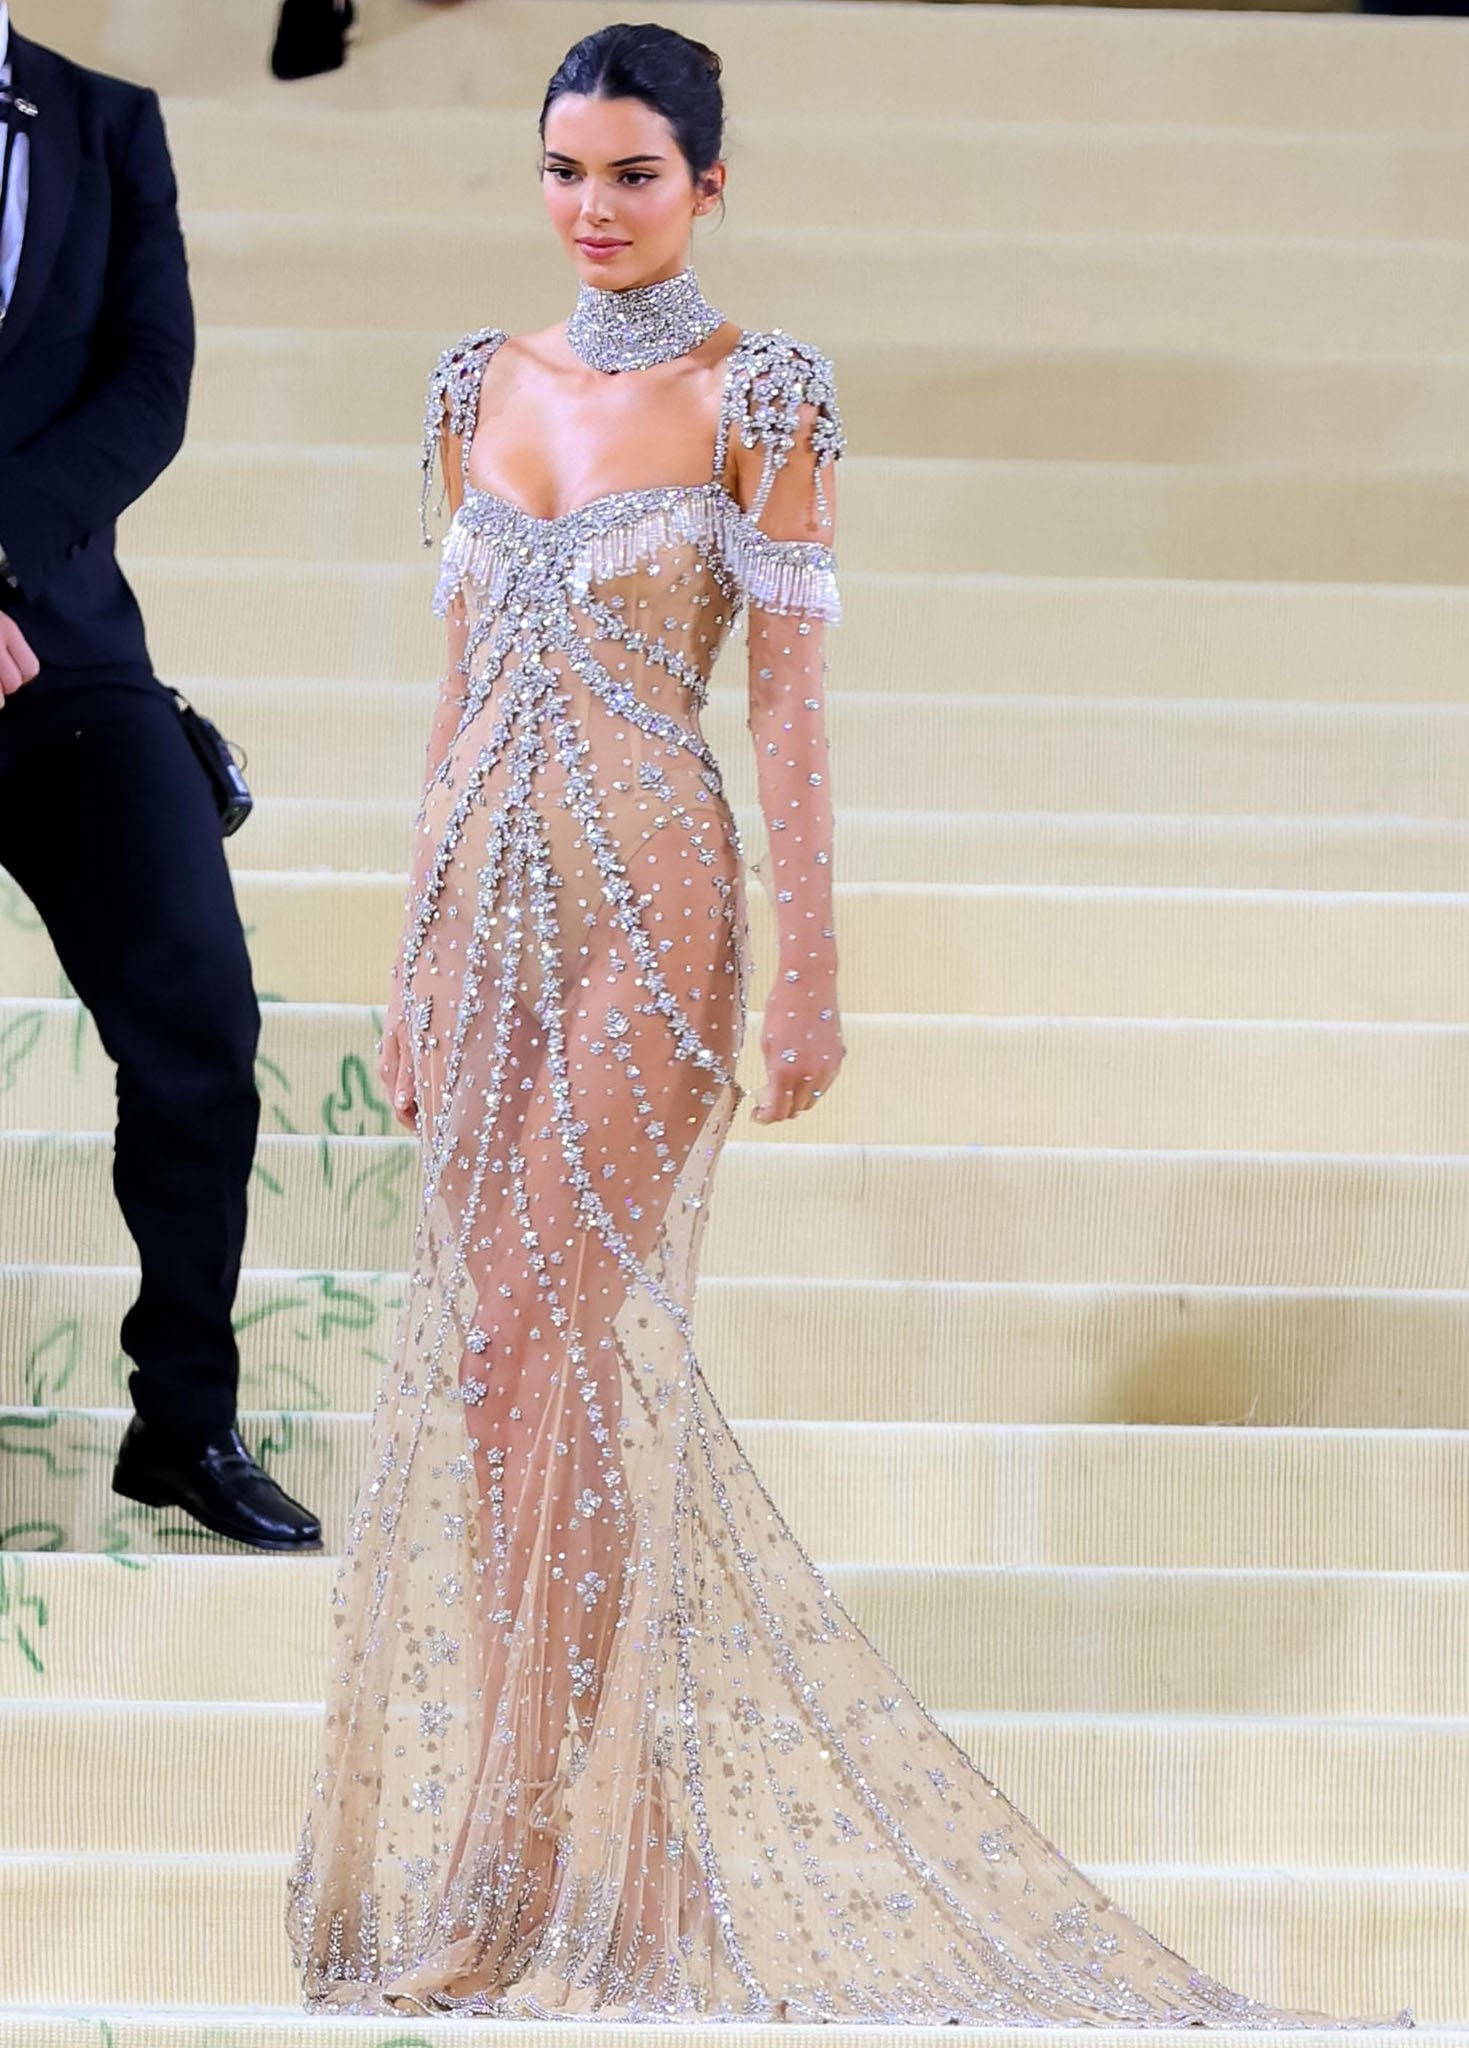 Kendall Jenner channels Audrey Hepburn's Eliza Doolittle character in My Fair Lady in her Givenchy crystal gown